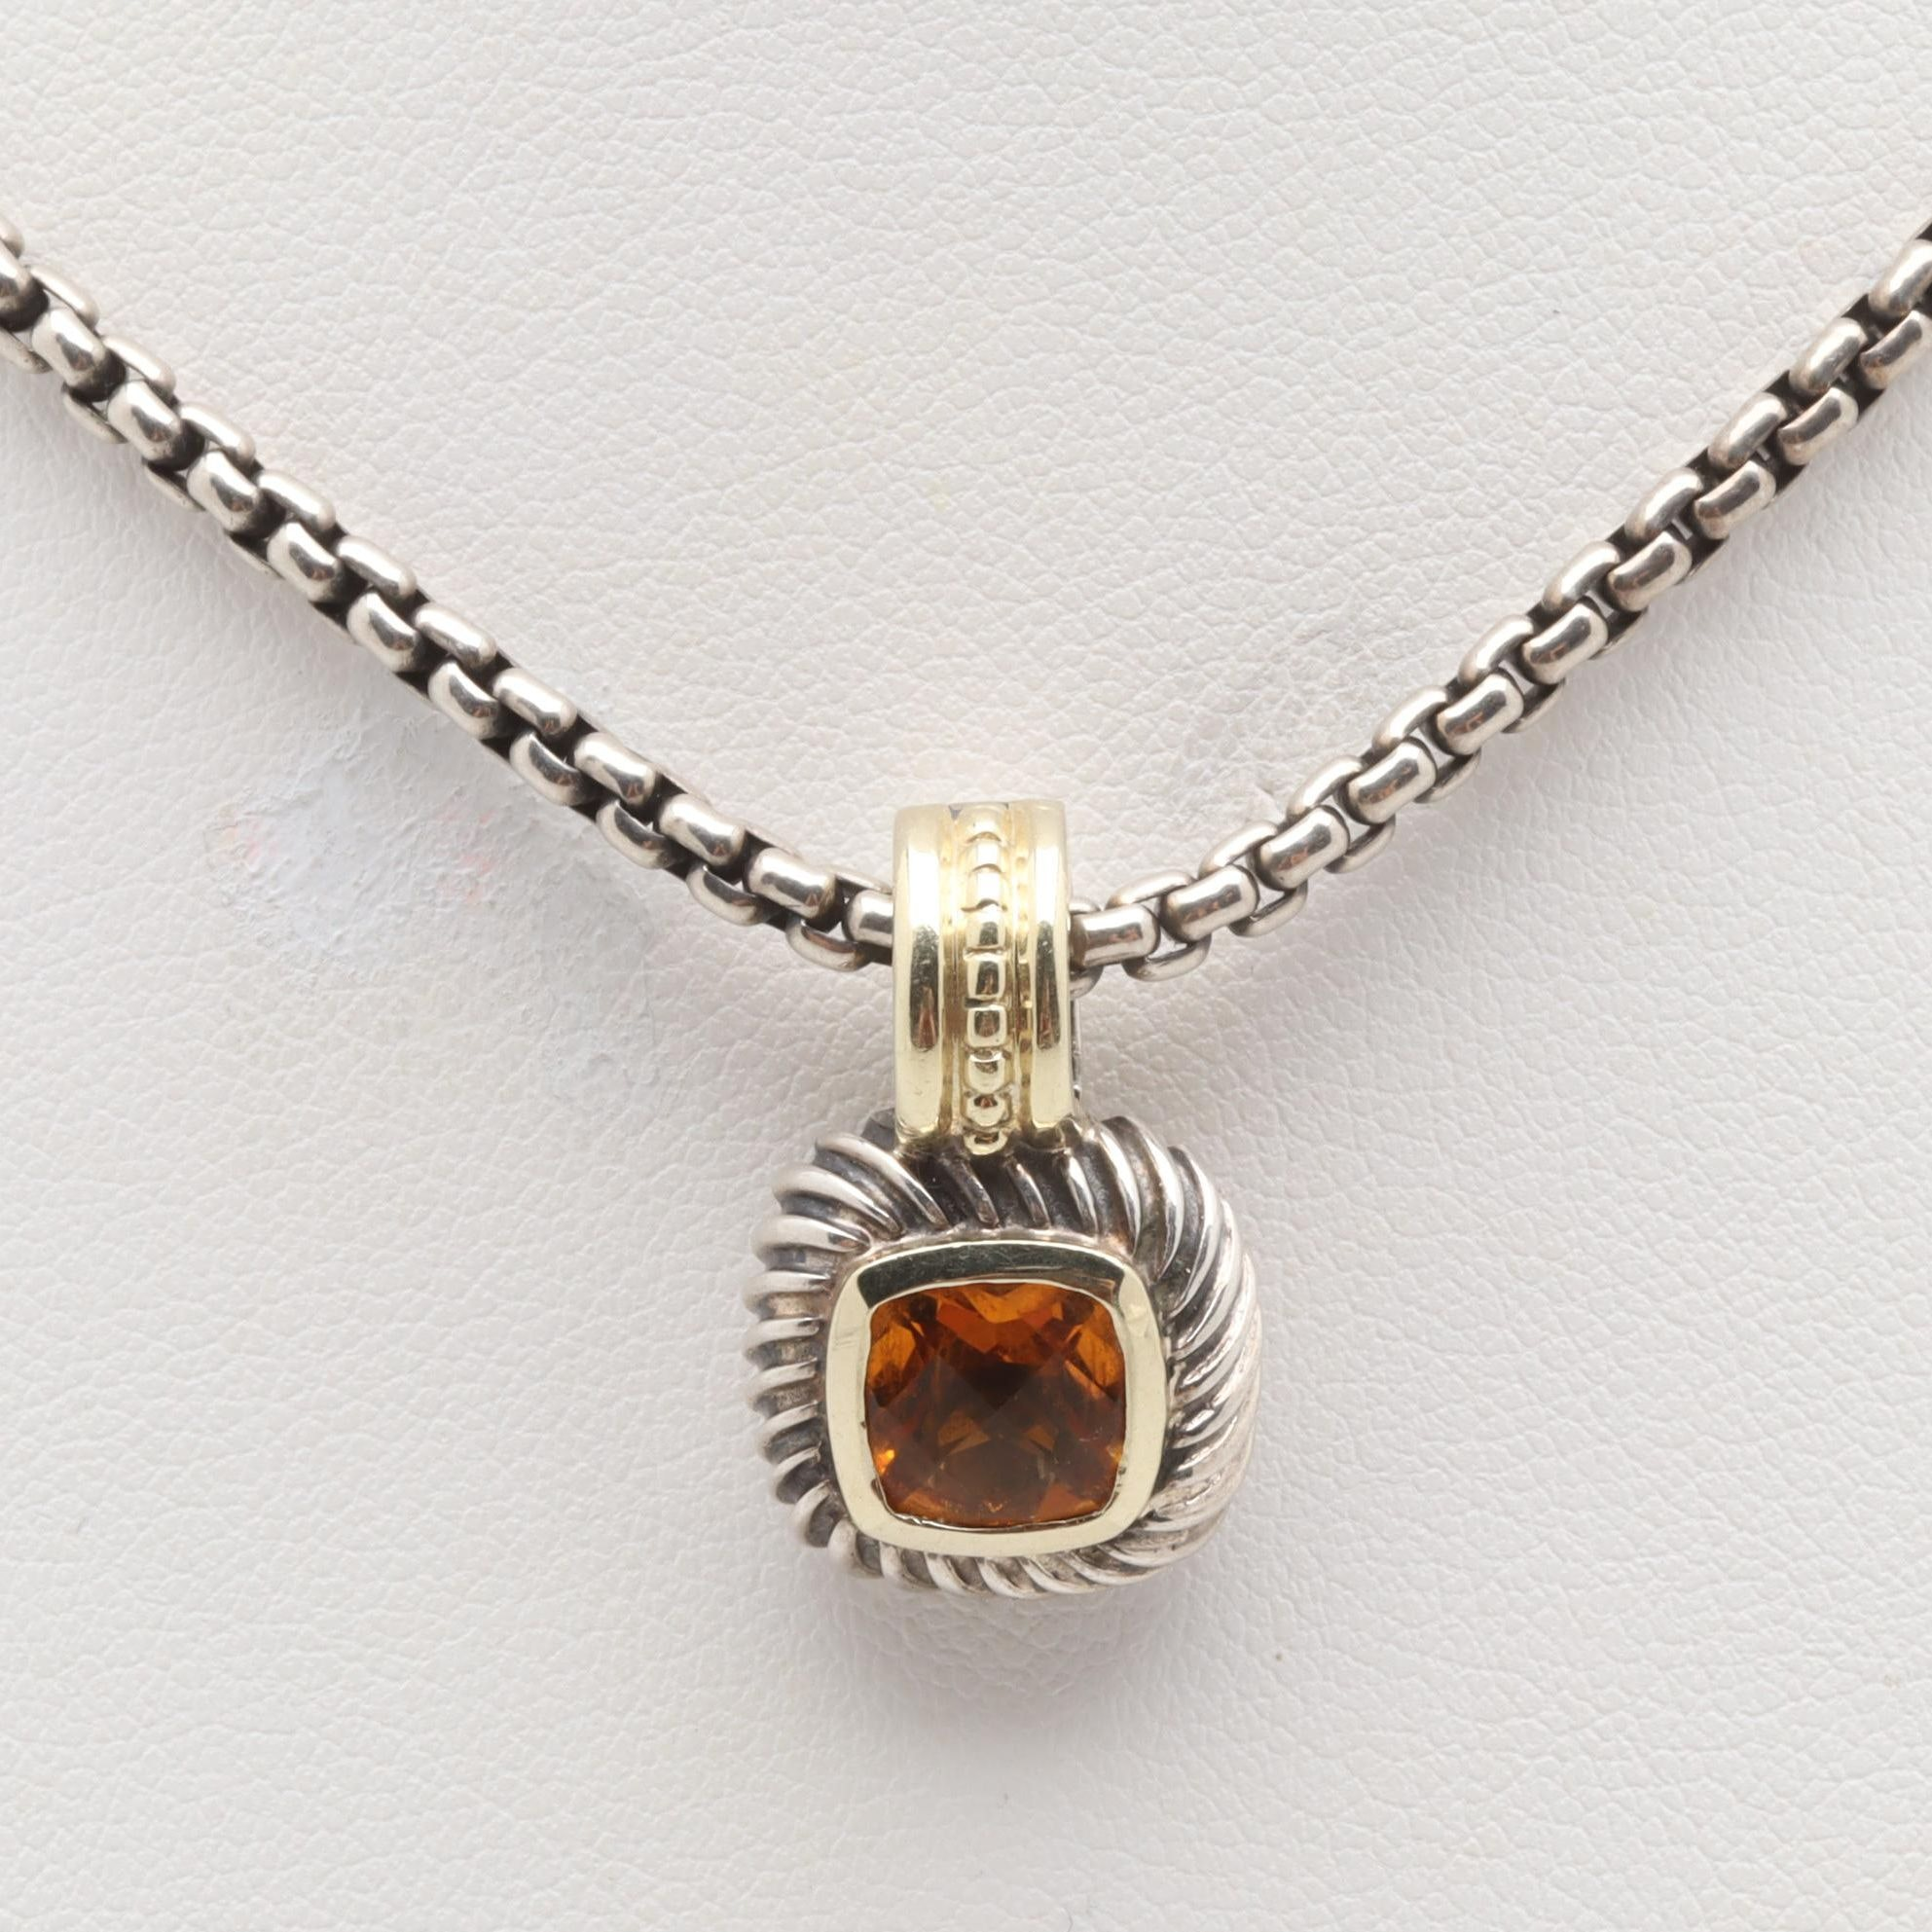 David Yurman Sterling Silver Citrine Necklace with 14K Yellow Gold Accents